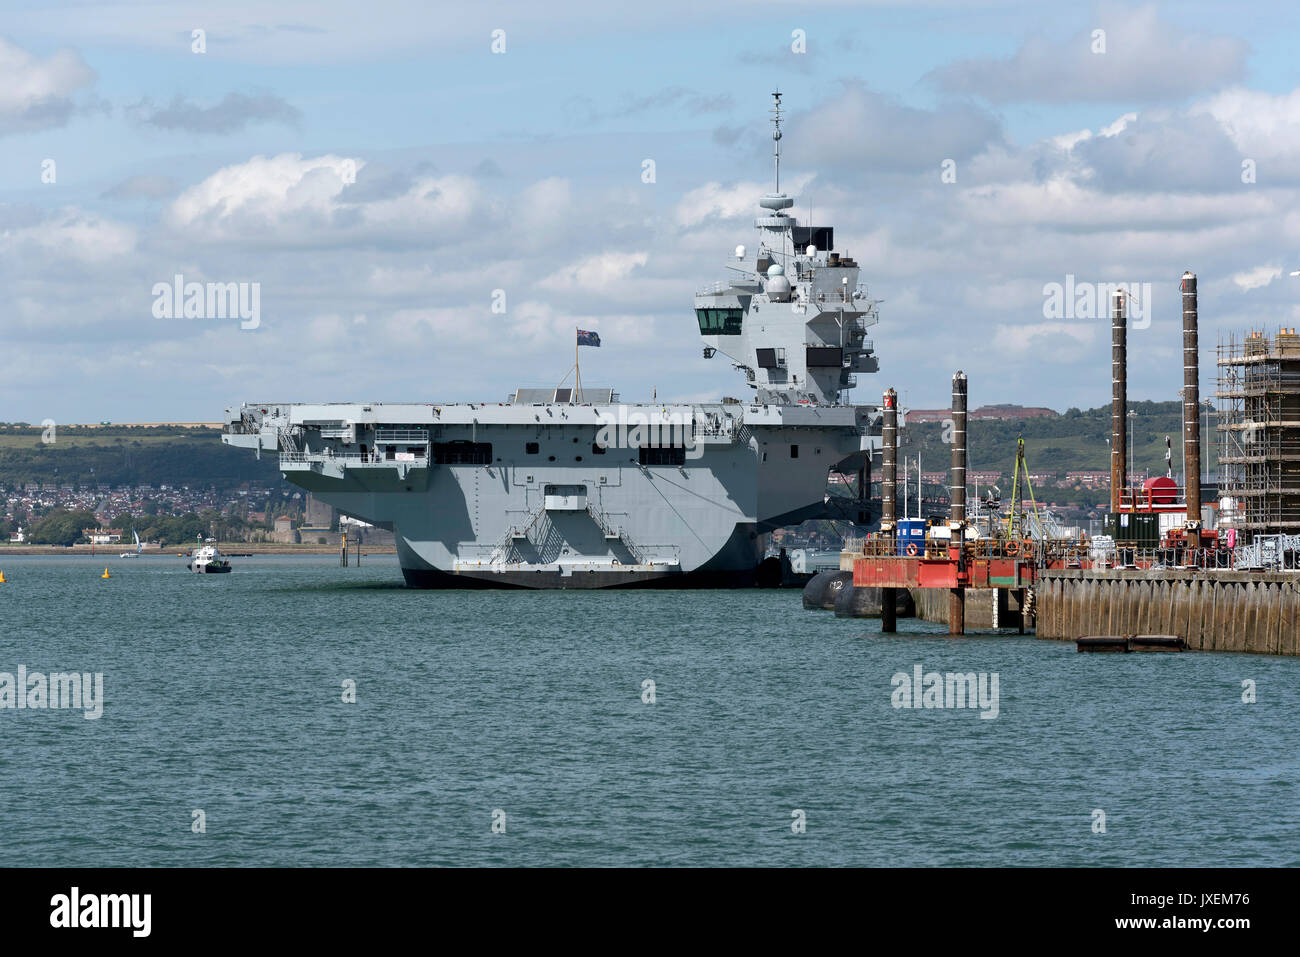 Portsmouth, UK. 16th Aug, 2017. Royal Navy Dockyard with aircraft carrier HMS Queen Elizabeth alongside the Princess Royal jetty. - Stock Image